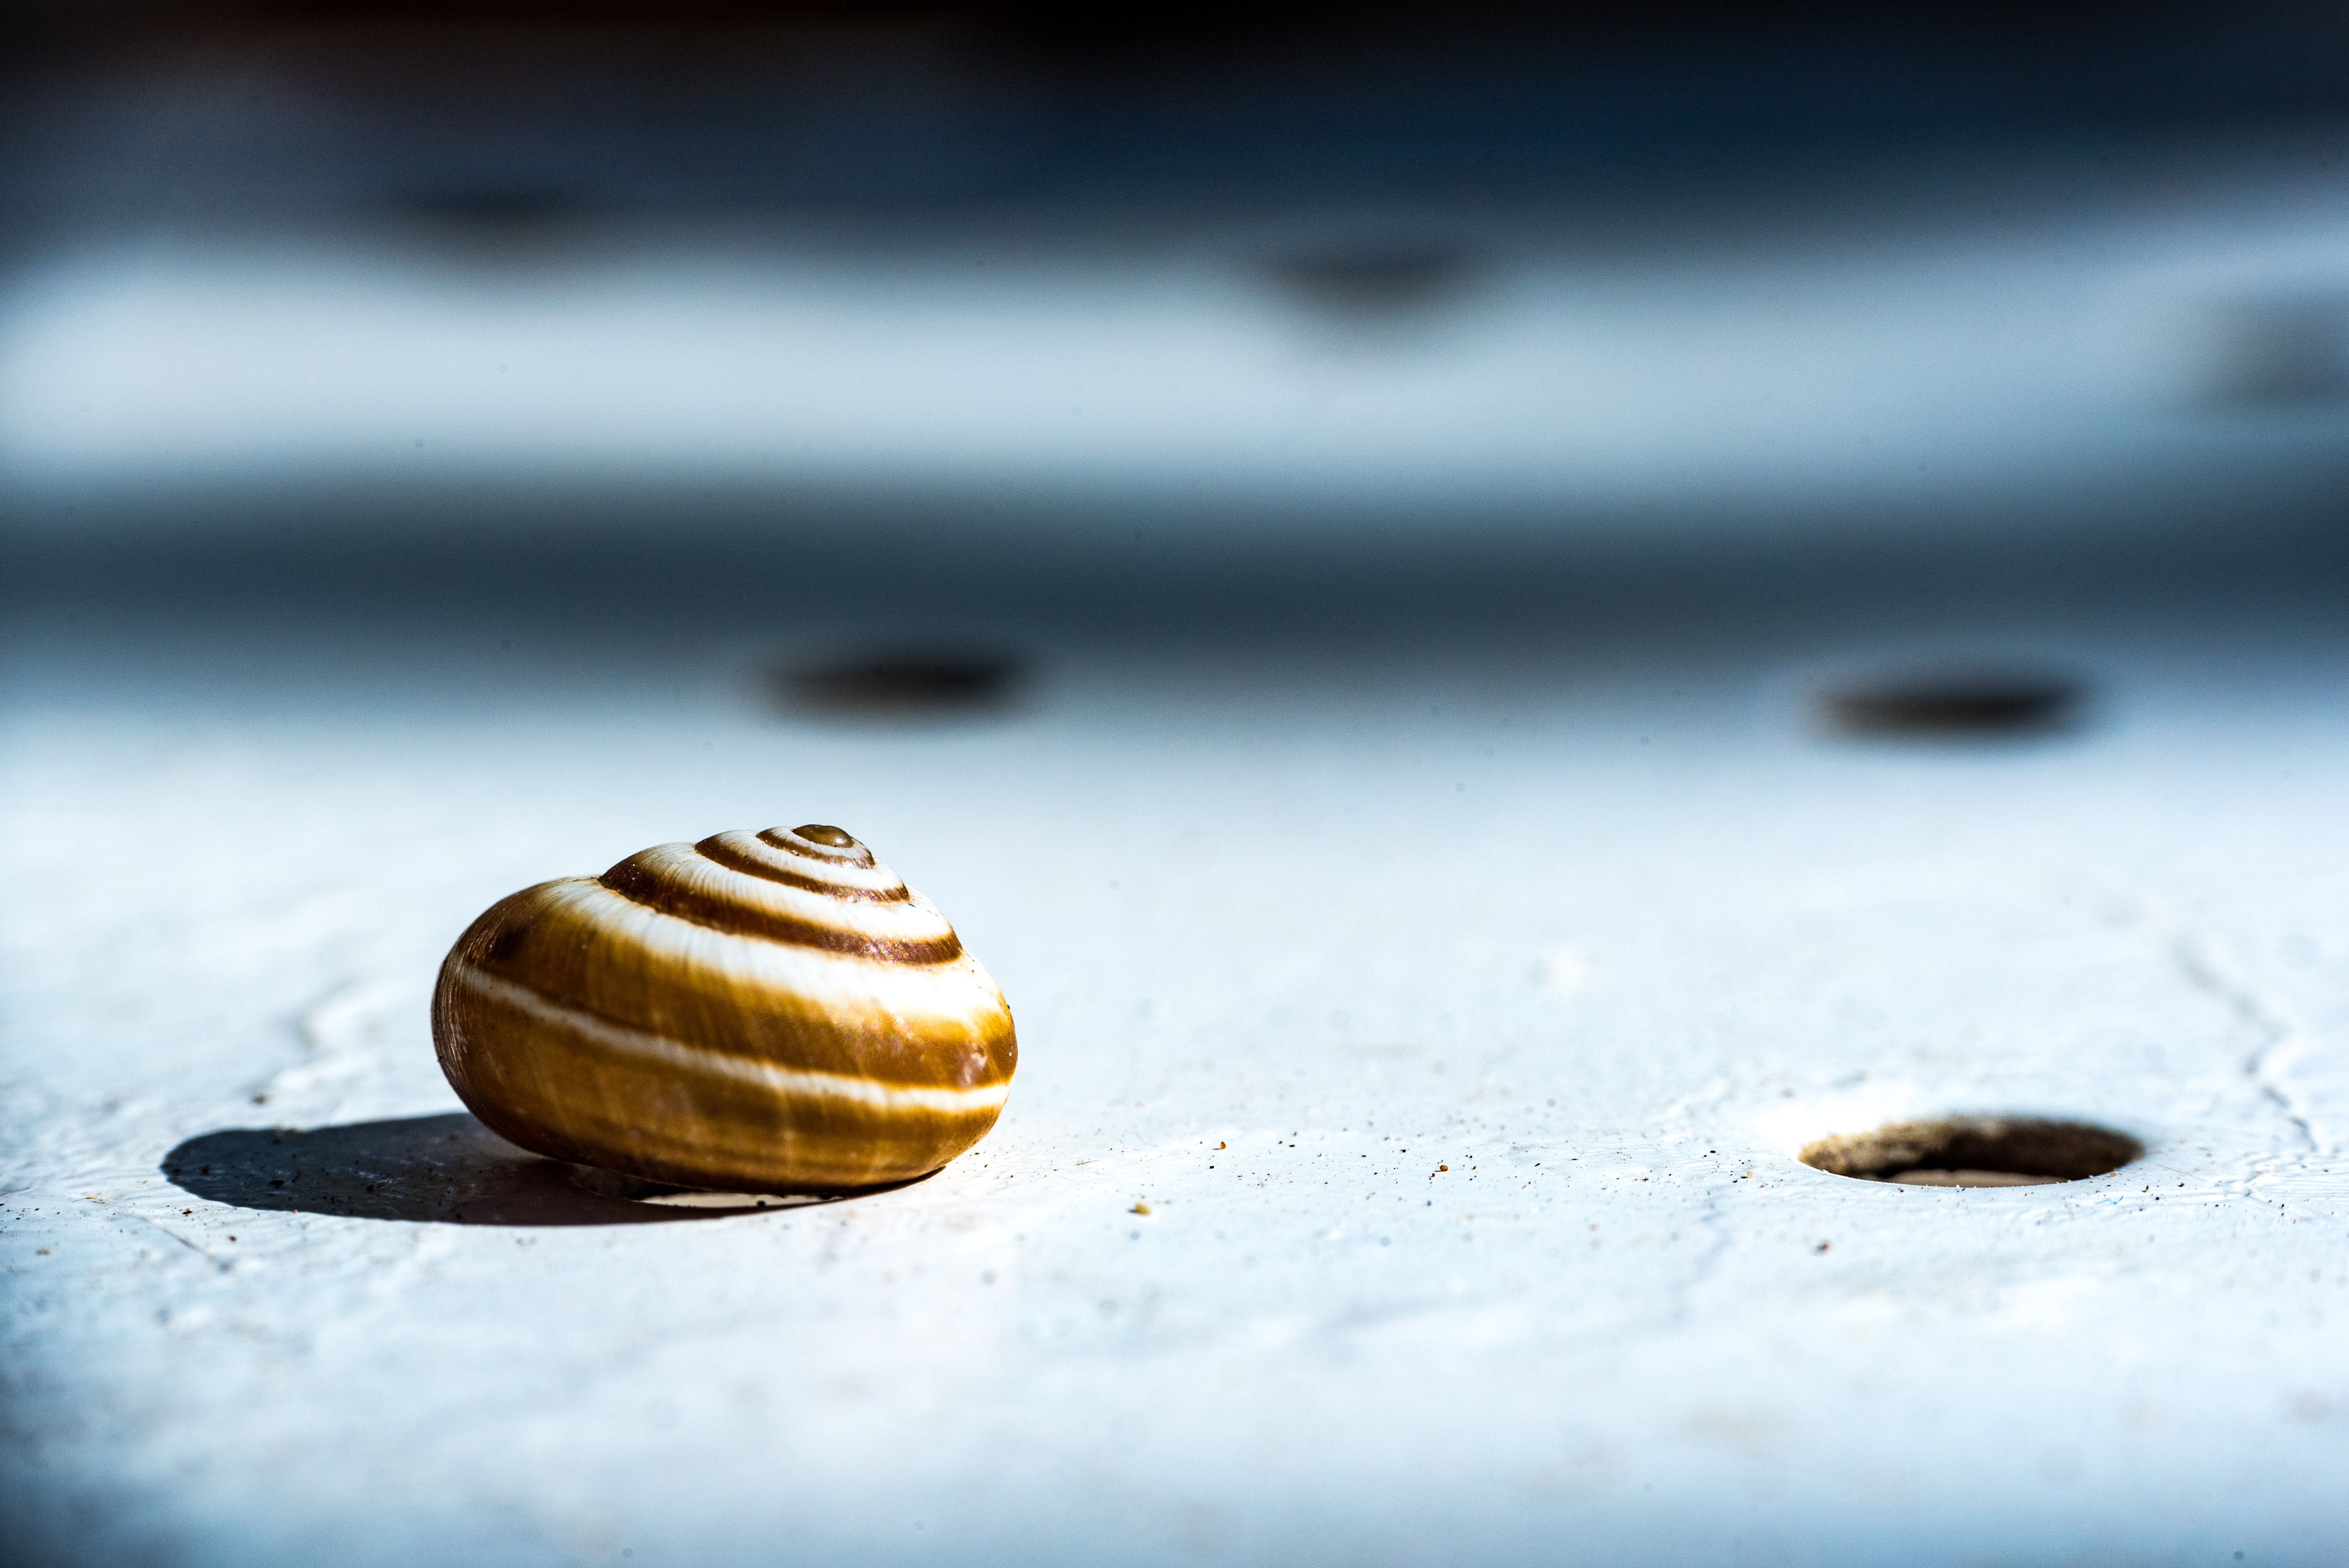 brown seashell on gray surface in closed-up photo